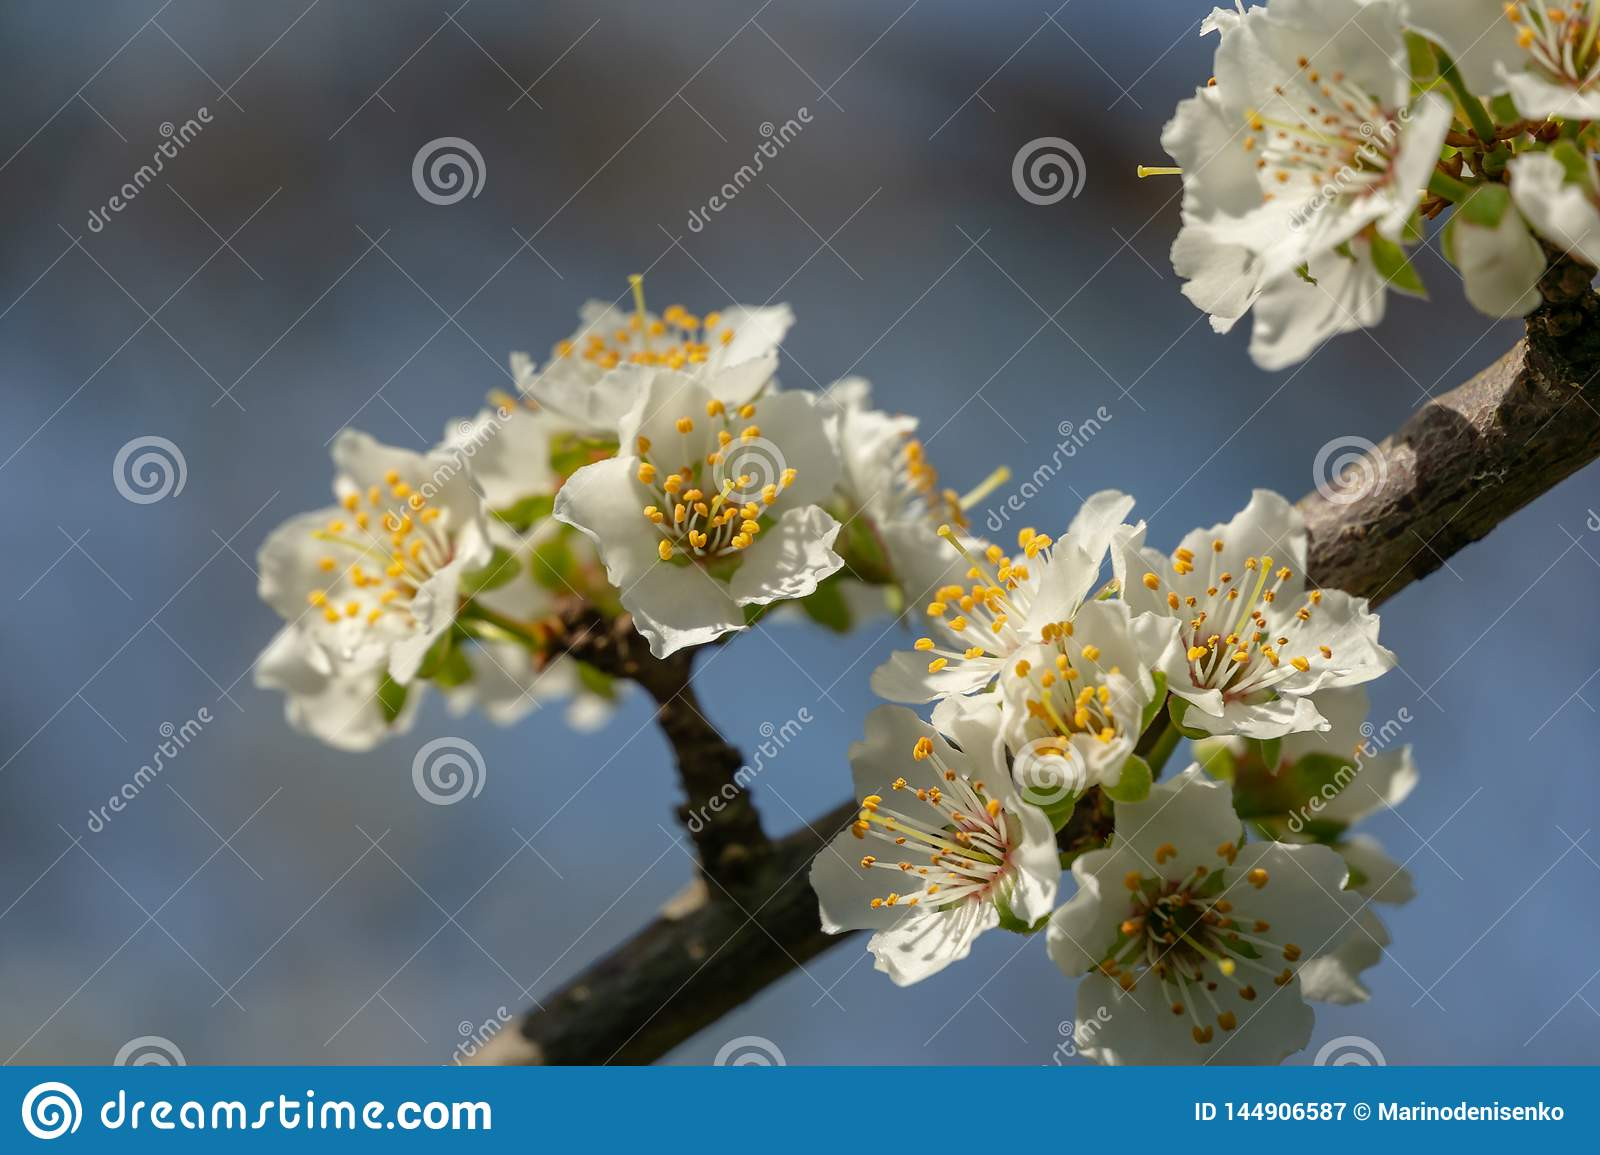 Lot of red flowers Japanese quince or Chaenomeles japonica covered branches on blurred garden background. Spring sunny day